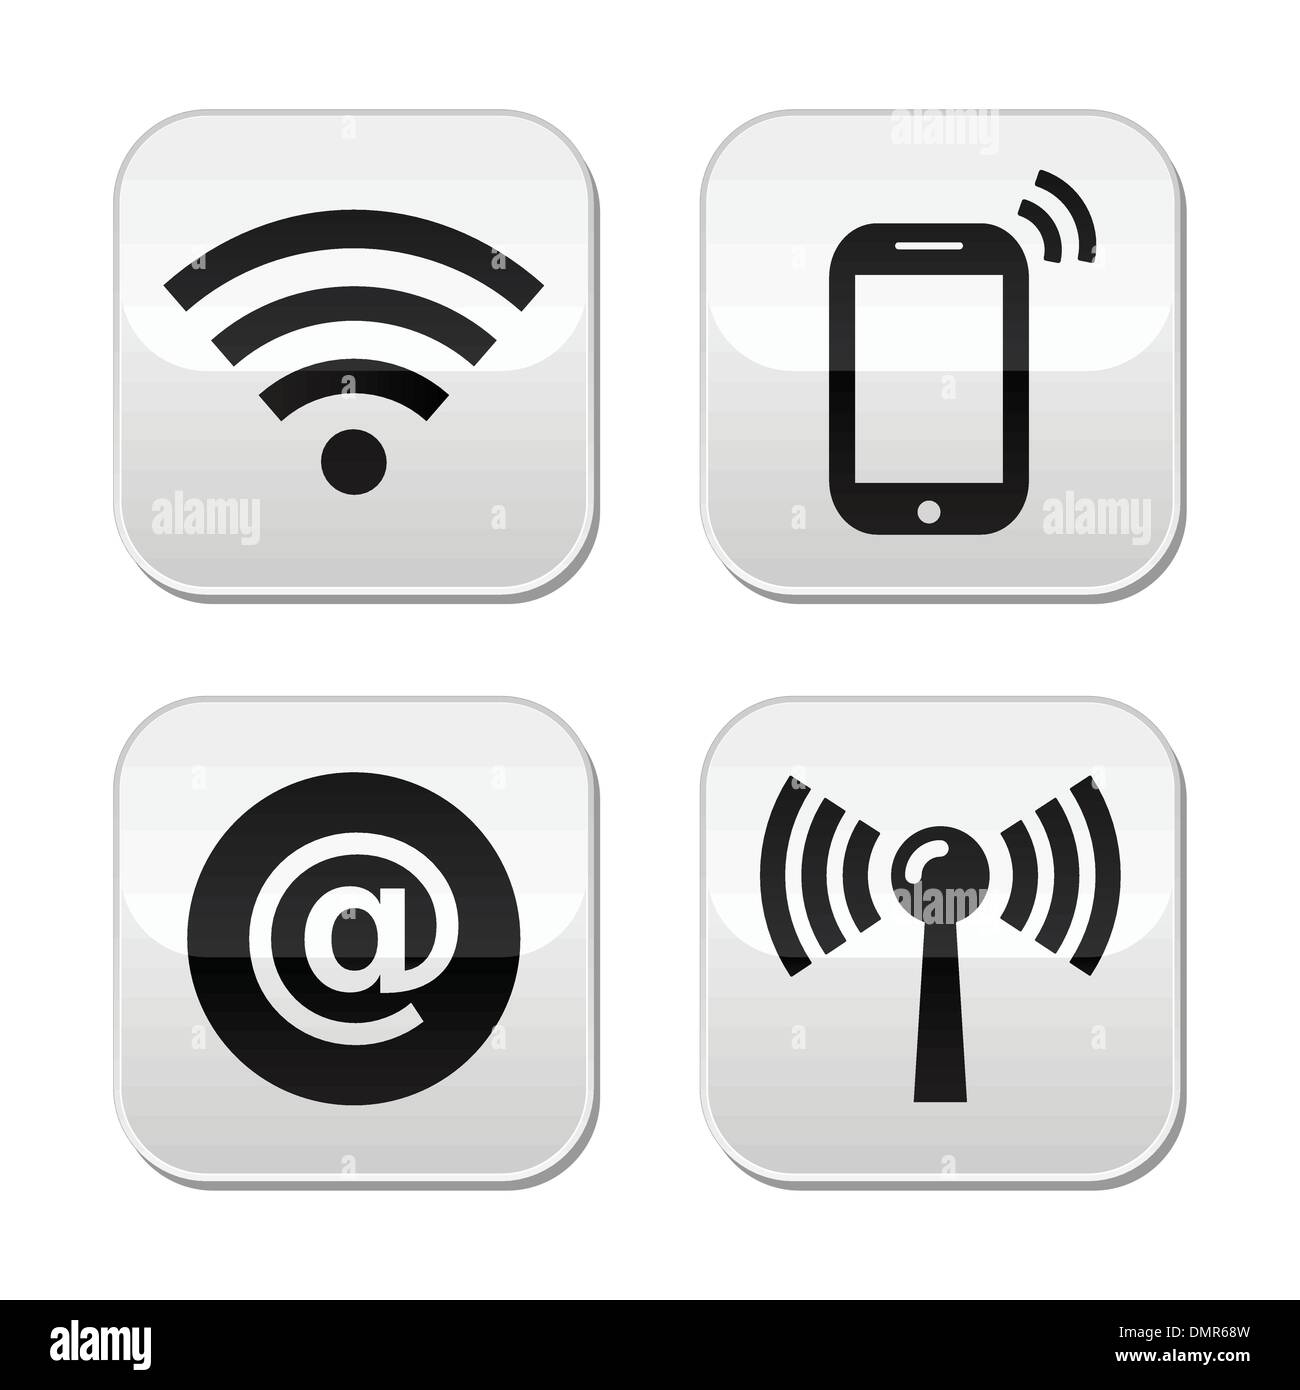 Wifi network, internet zone buttons set - Stock Image